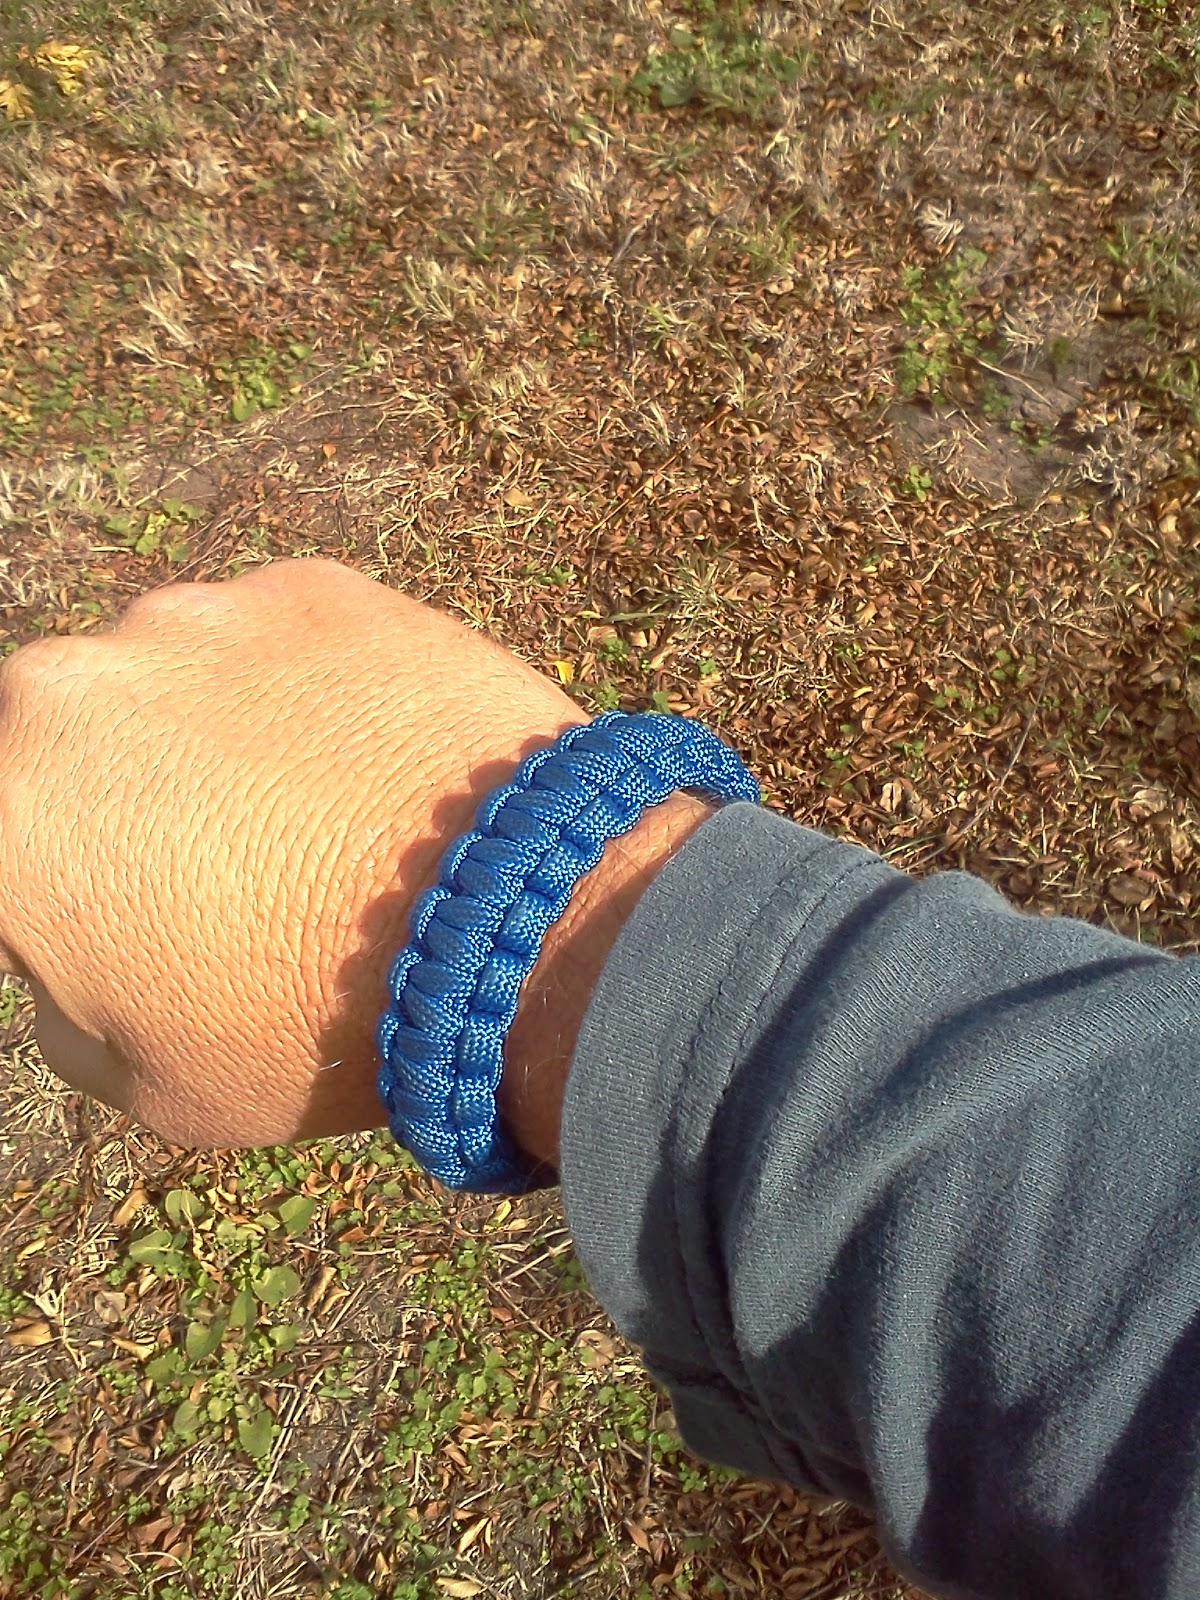 TIPS AND TRICKS: HOW TO MAKE A SURVIVAL BRACELET